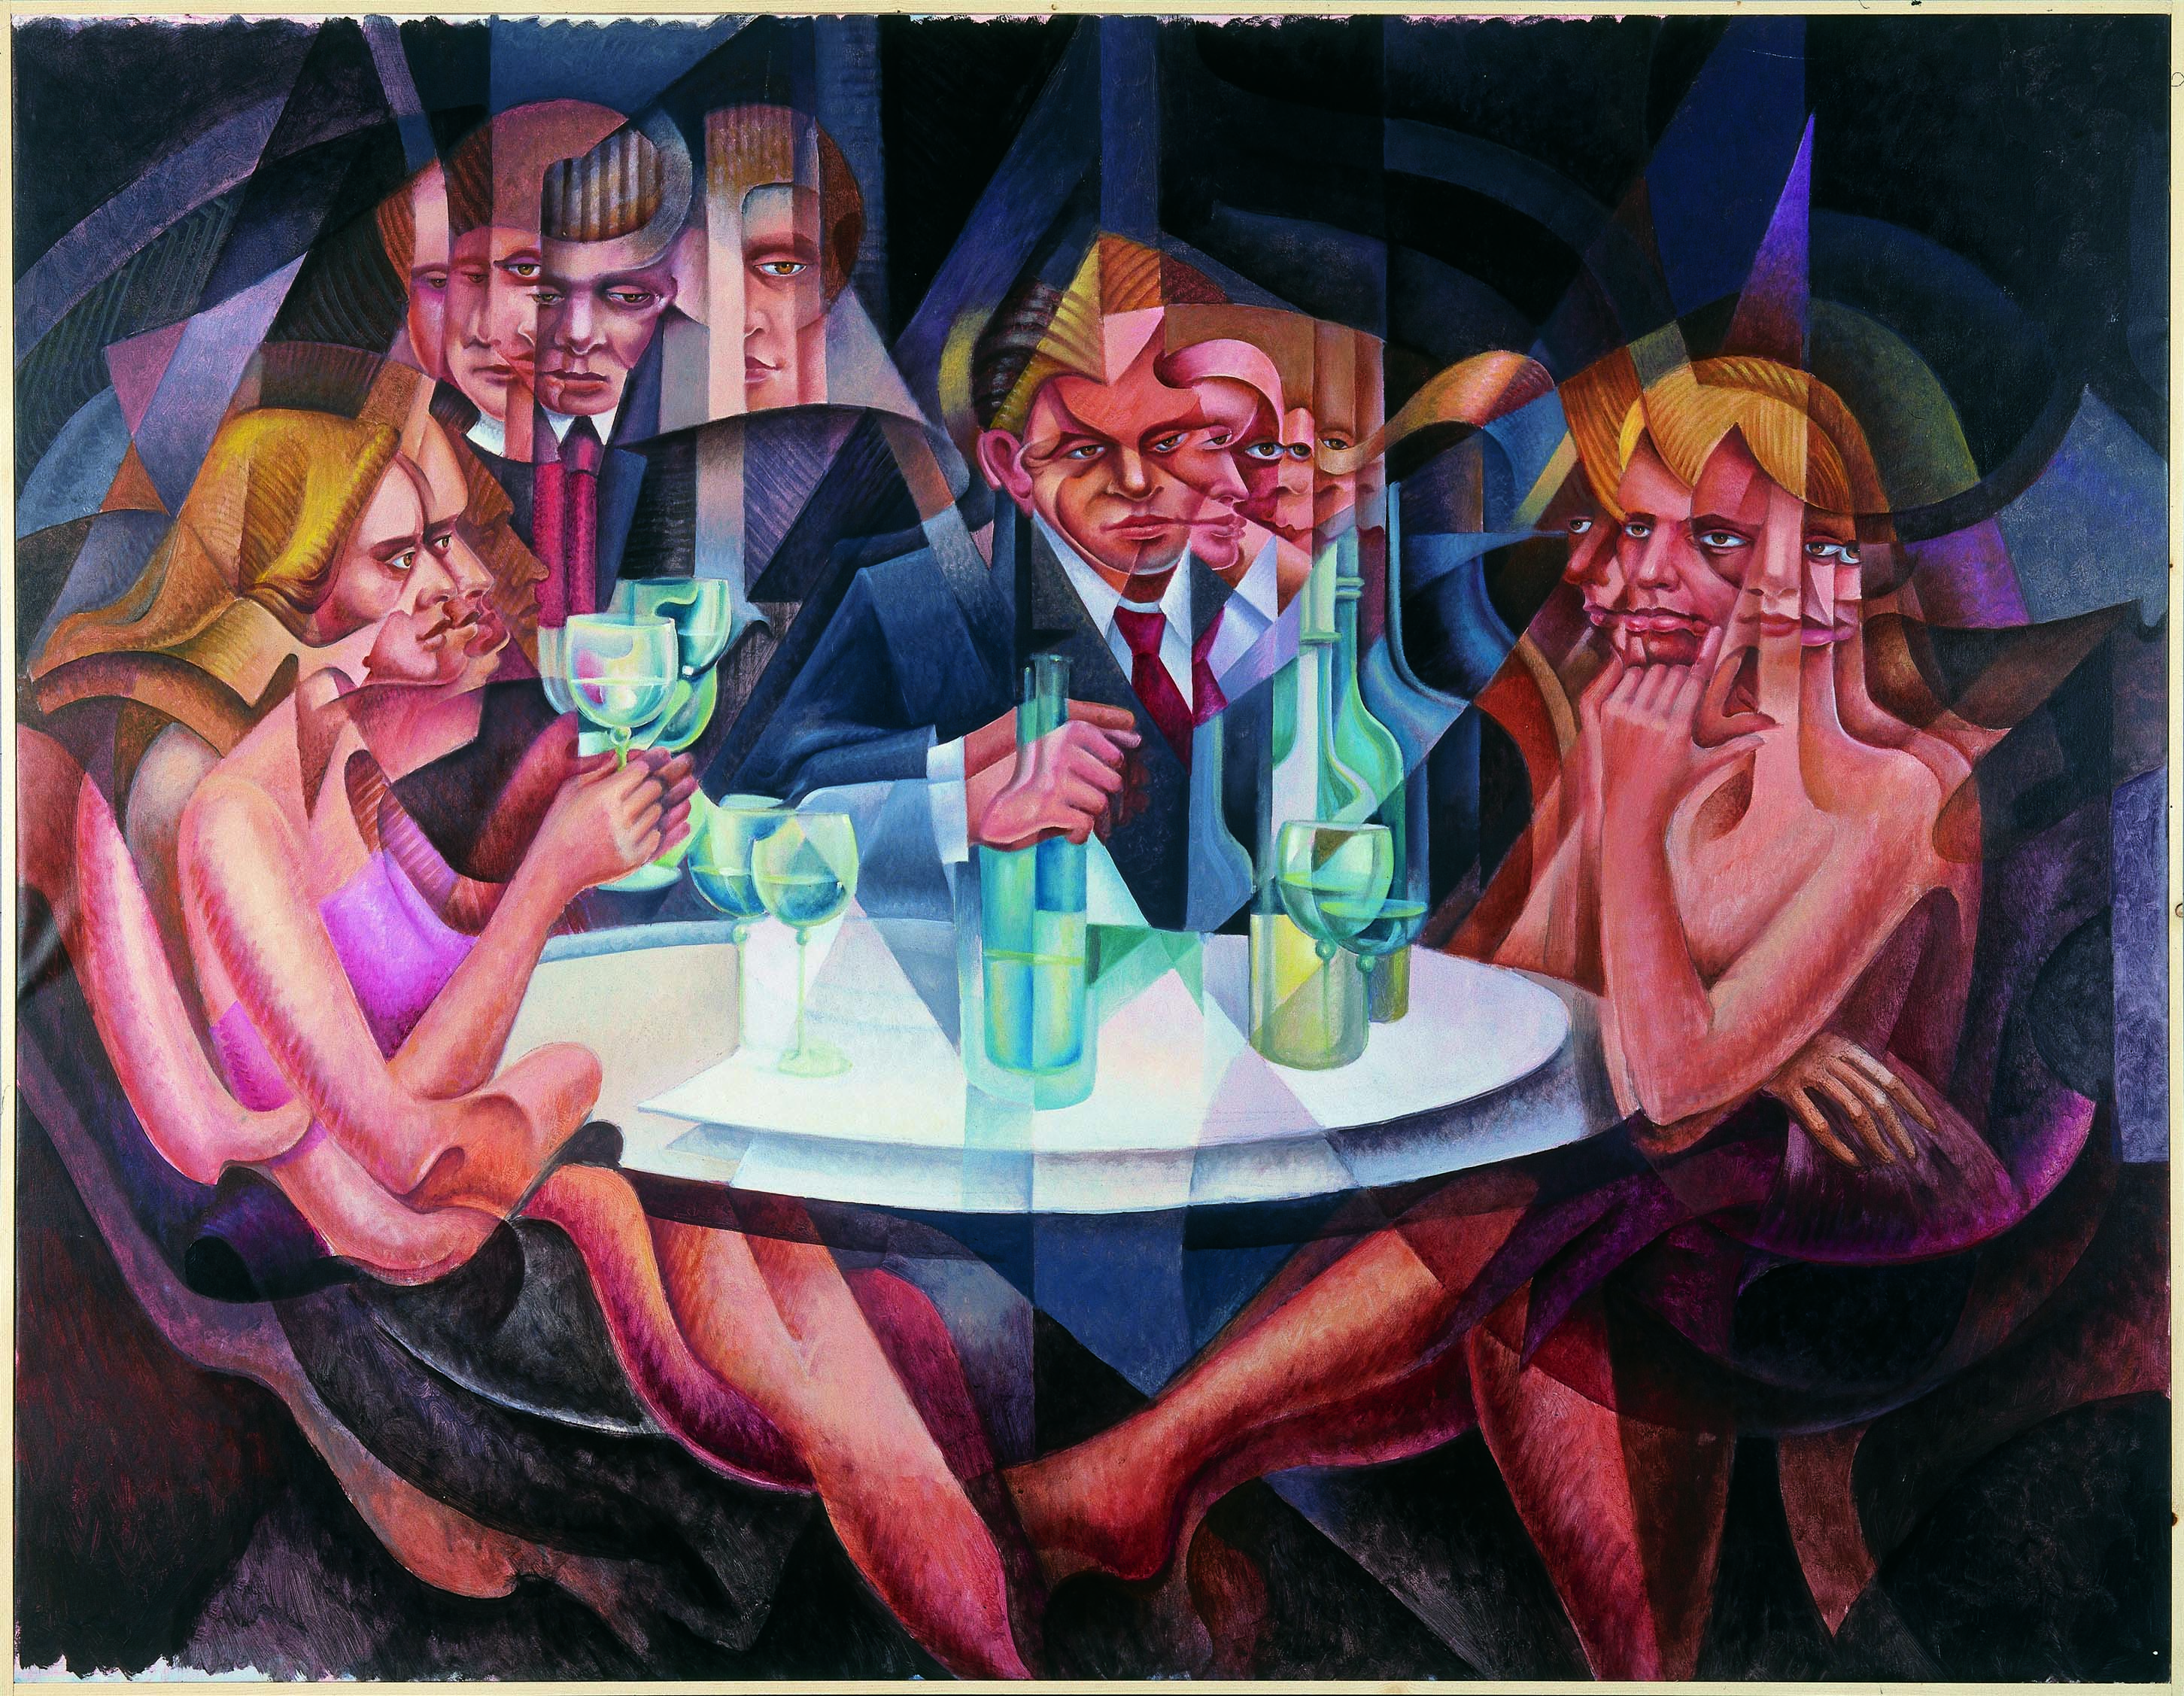 Wine Party, Oil on Canvas, 120X160cm, 1995